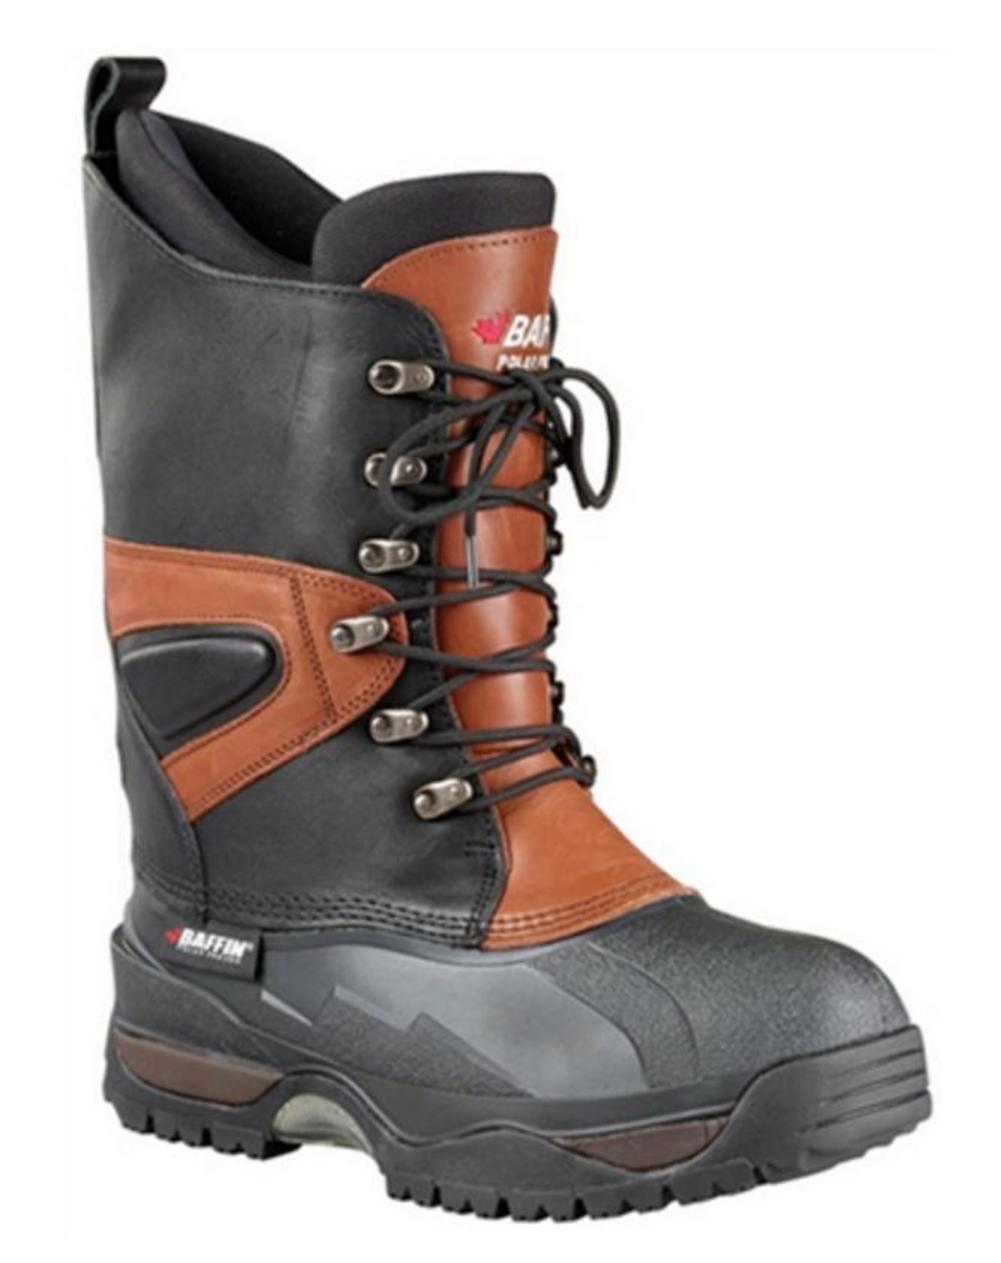 Baffin Inc Apex Boots Economical, stylish, and eye-catching shoes